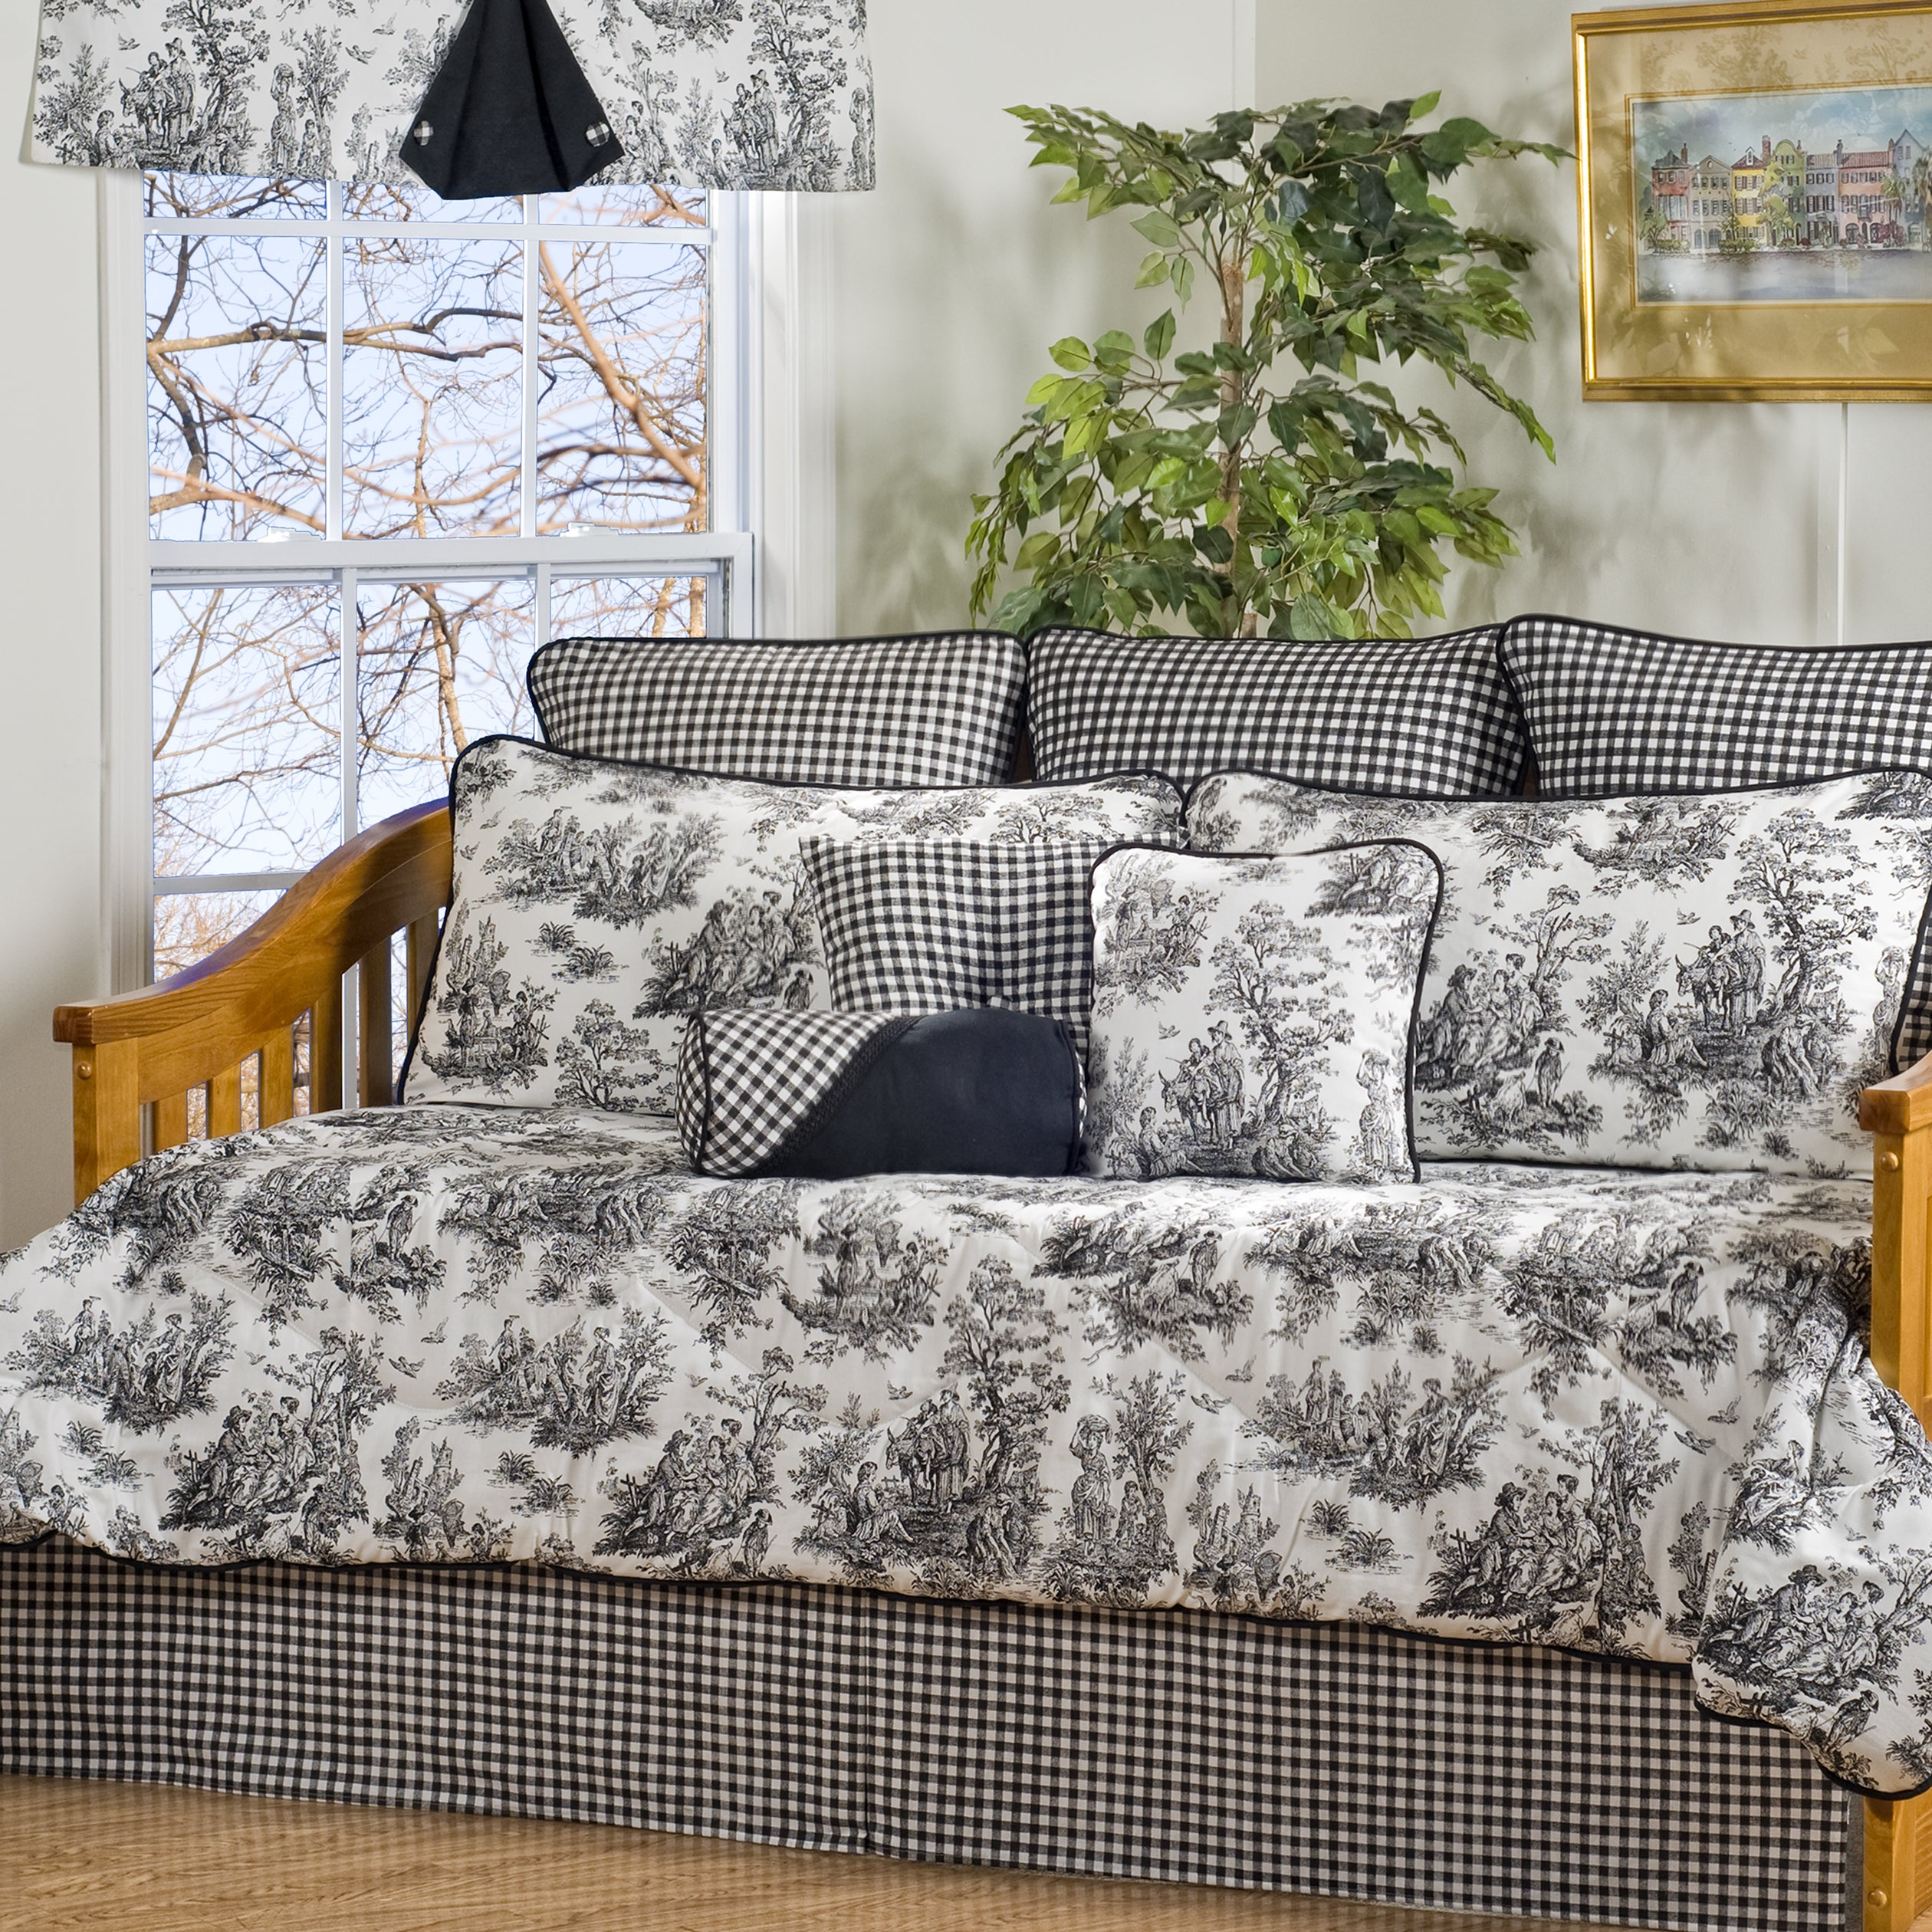 Shop Black Friday Deals On Plymouth Black And White Toile 10 Piece Cotton Daybed Set Overstock 4568099